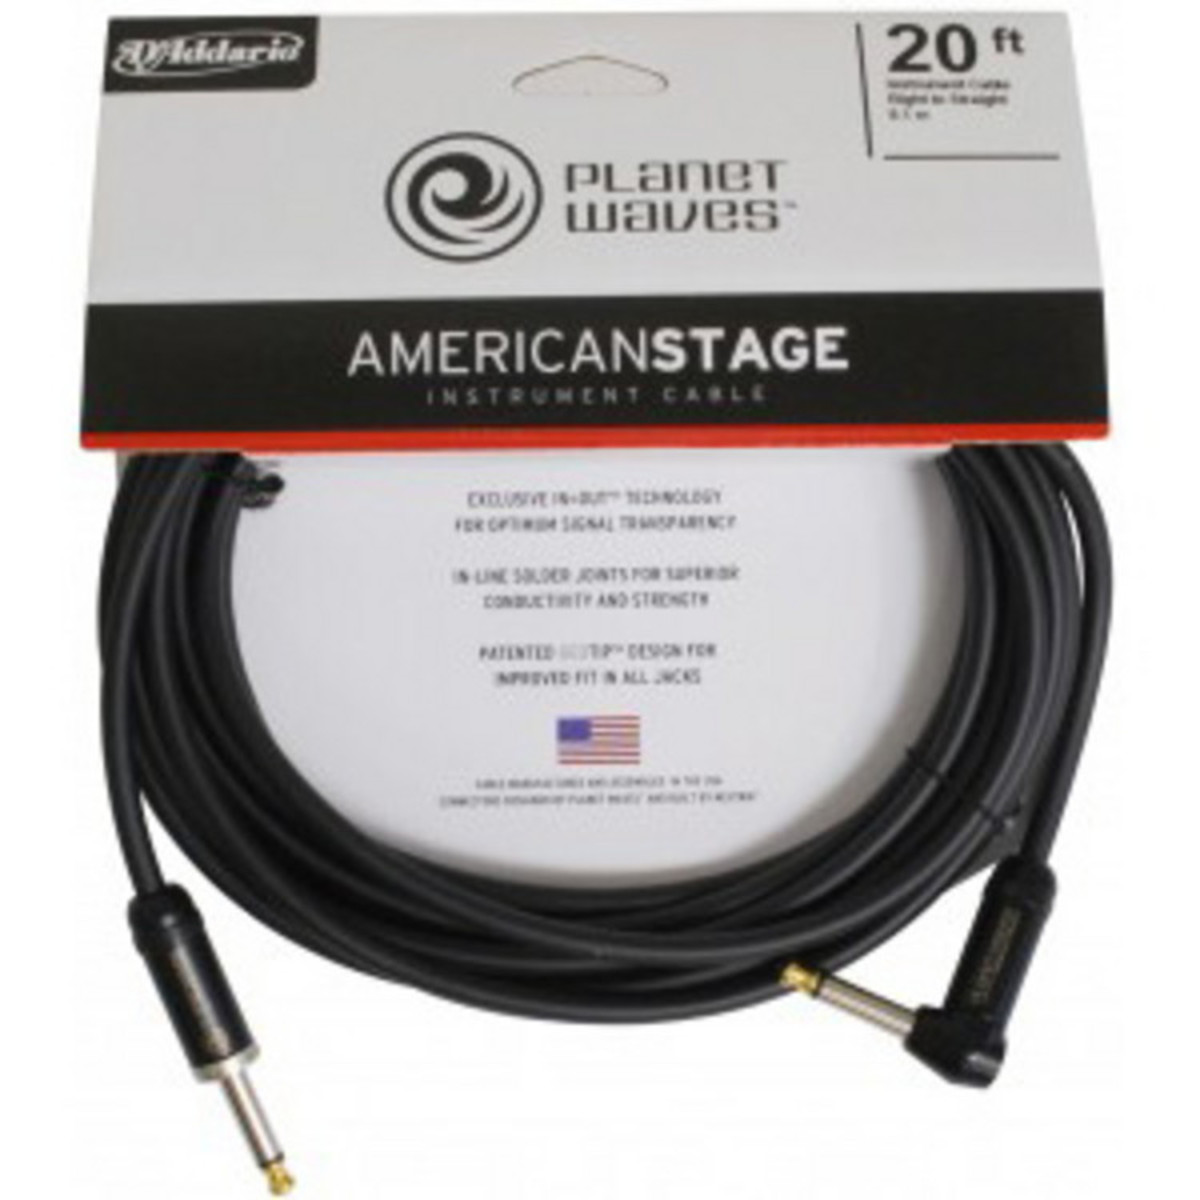 Planet Waves American Stage Instrument Cable R Angled